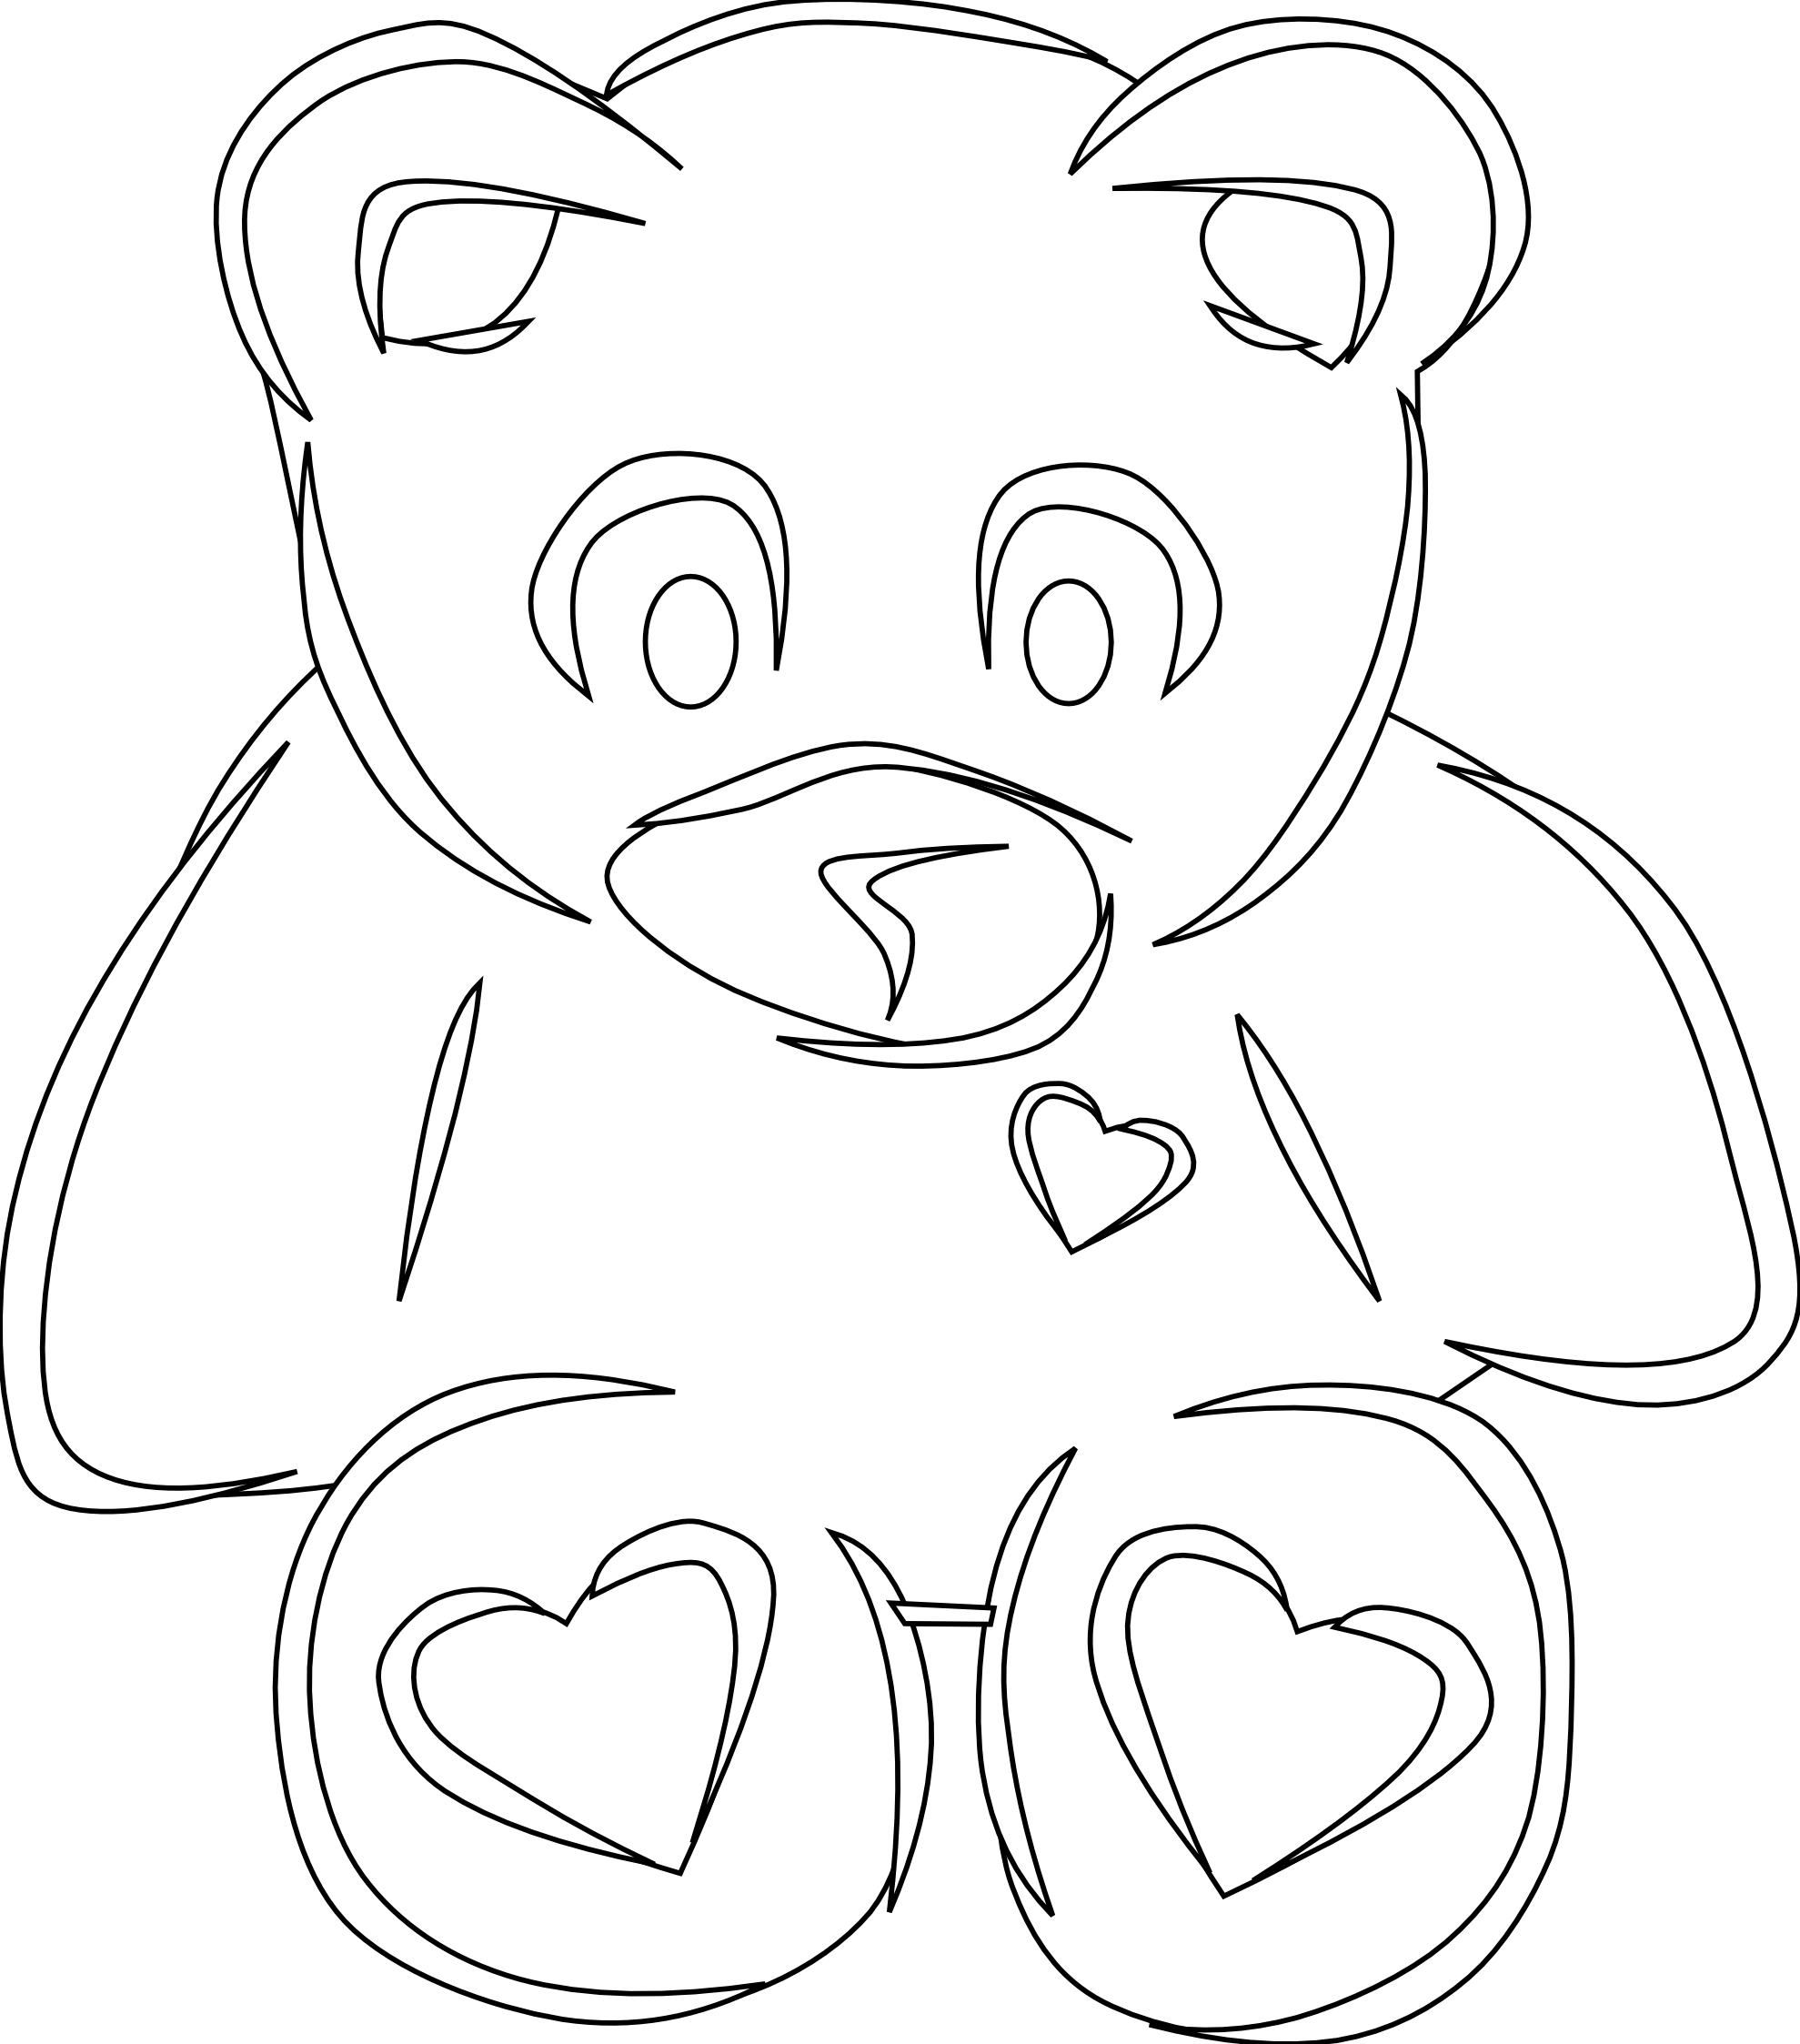 Book with heart clipart clipart transparent stock clipartist.net » Clip Art » clip art bear heart 2 black white line ... clipart transparent stock